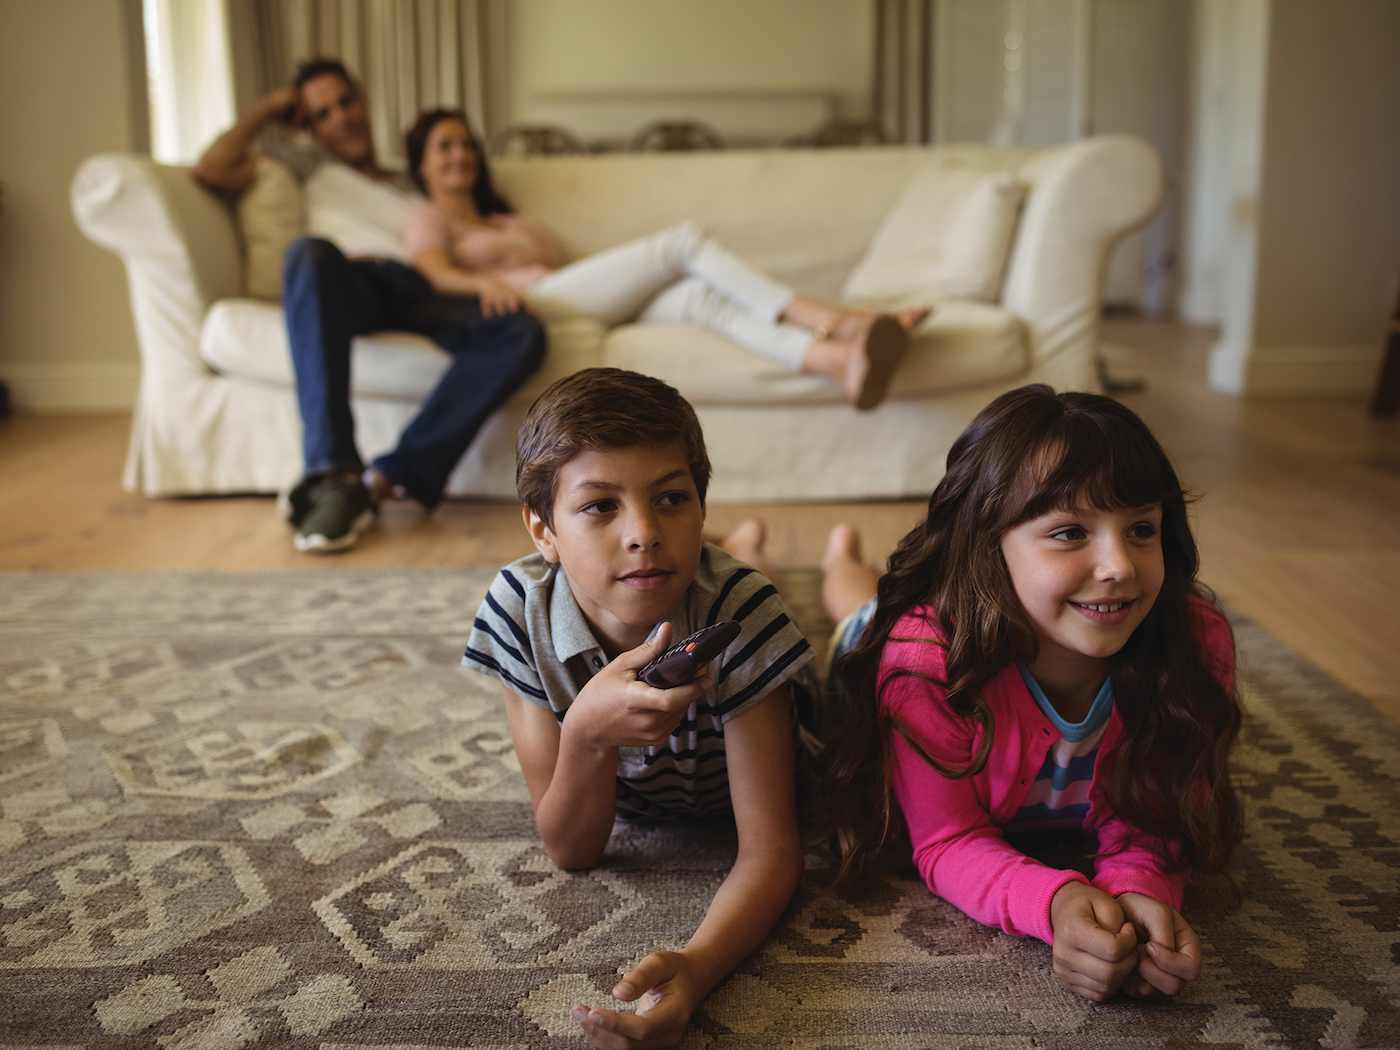 Two children lounge on floor of living room watching TV with parents behind them on couch